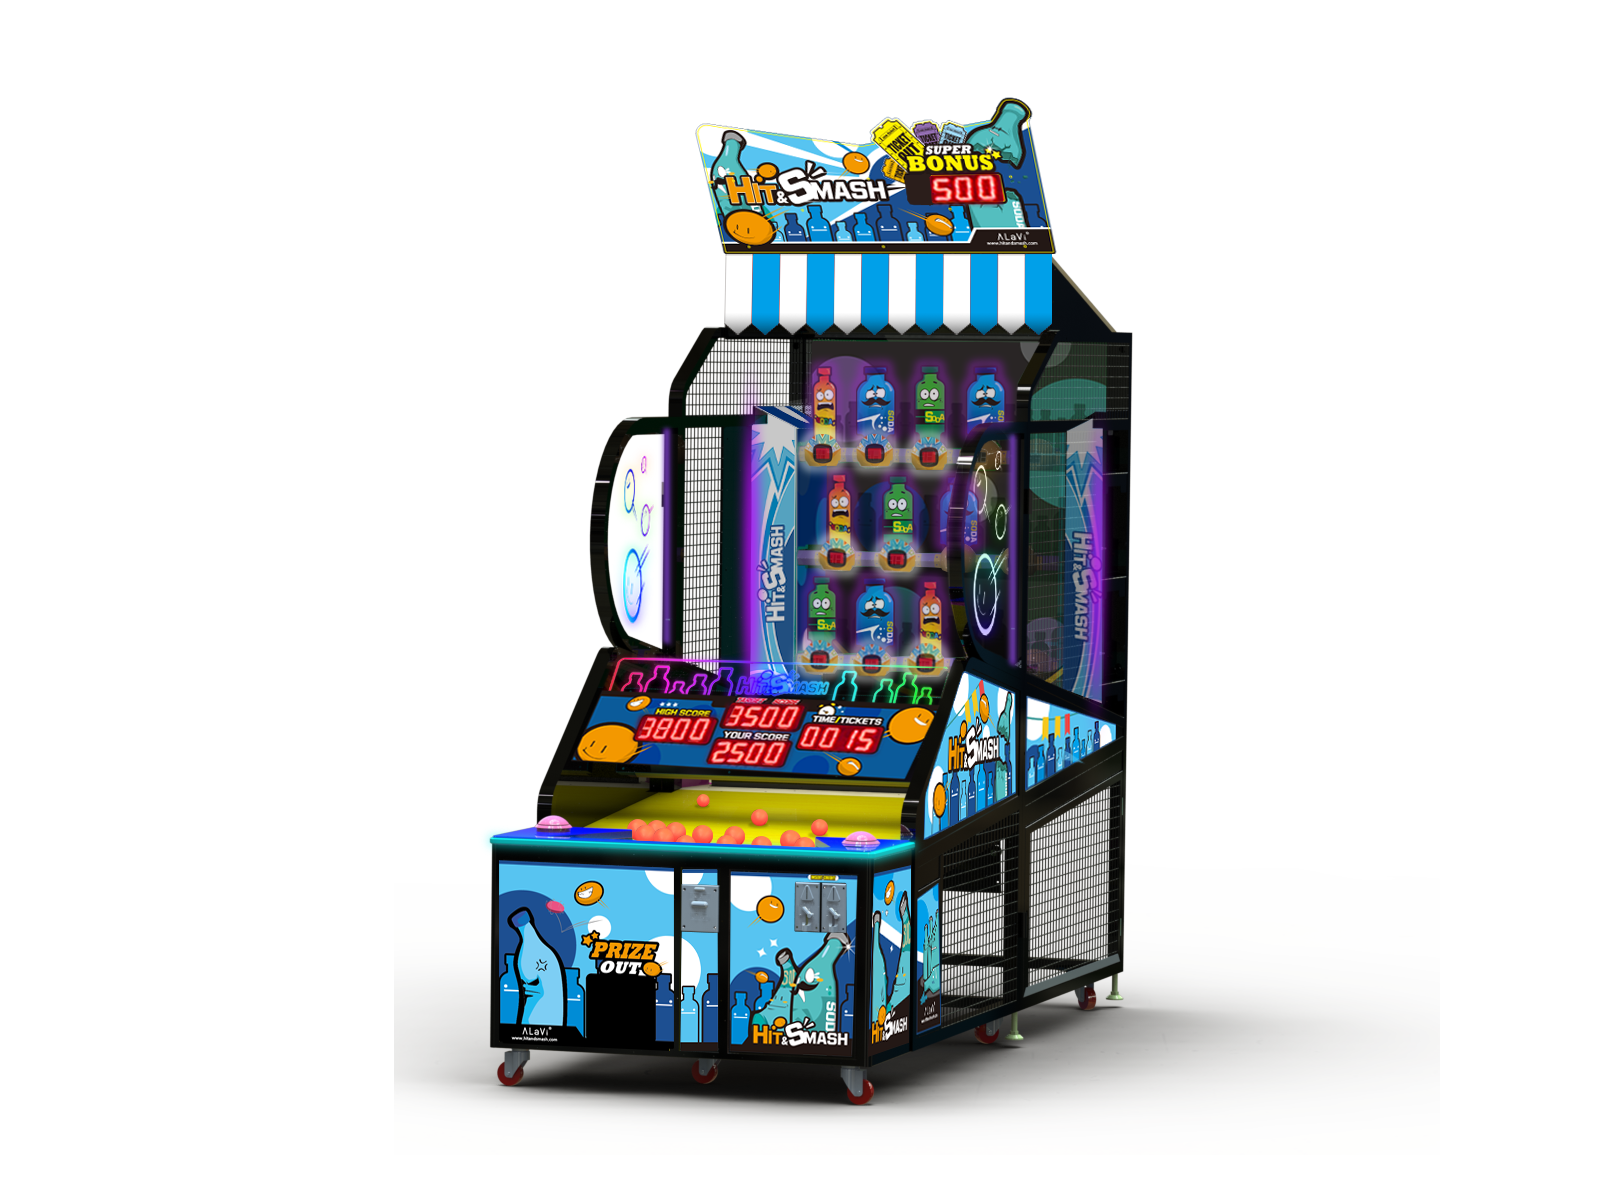 Hit & Smash by Electrocoin – Redemption, Skill & Prize Vending Games